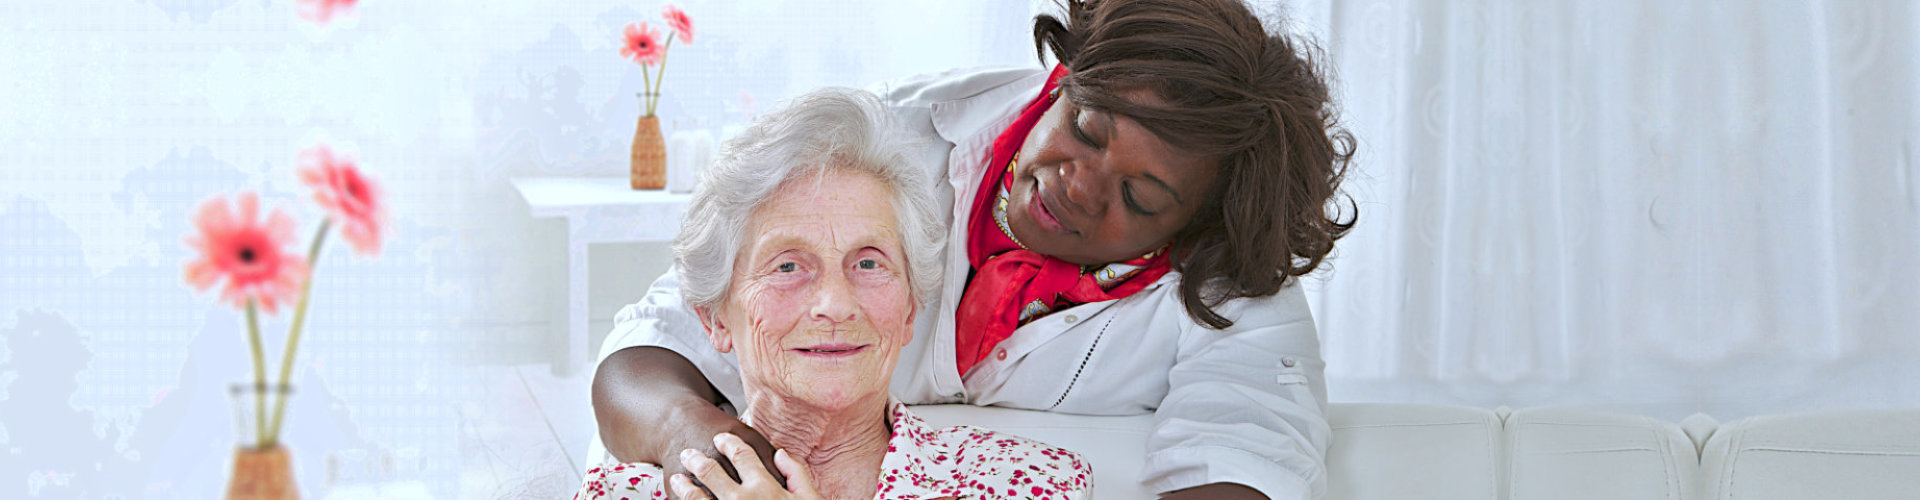 female nurse holding the hands of senior woman smiling